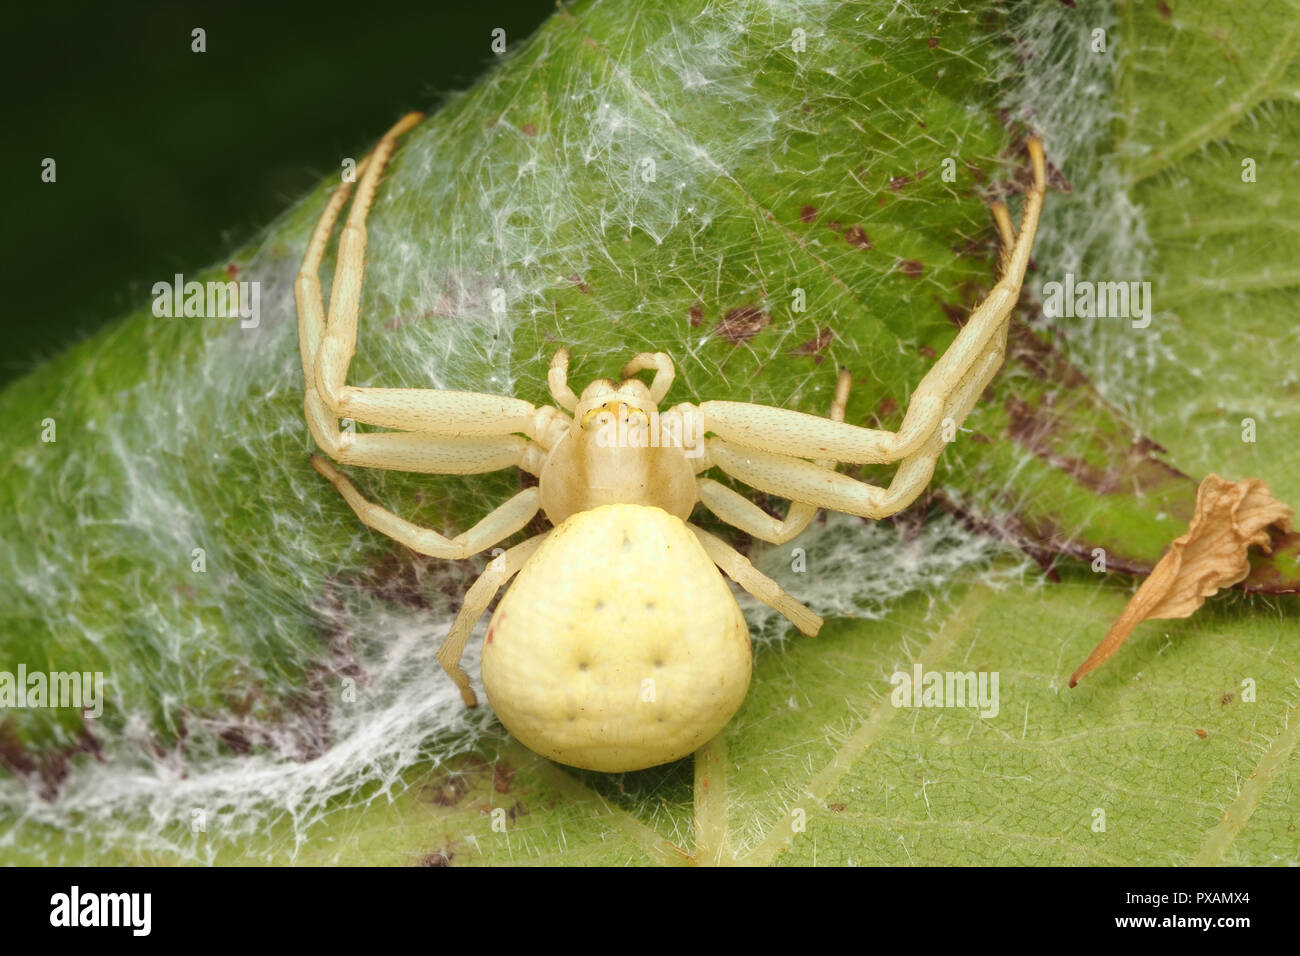 Female Crab spider (Misumena vatia) guarding her eggs which are inside rolled up leaf. Tipperary, Ireland - Stock Image